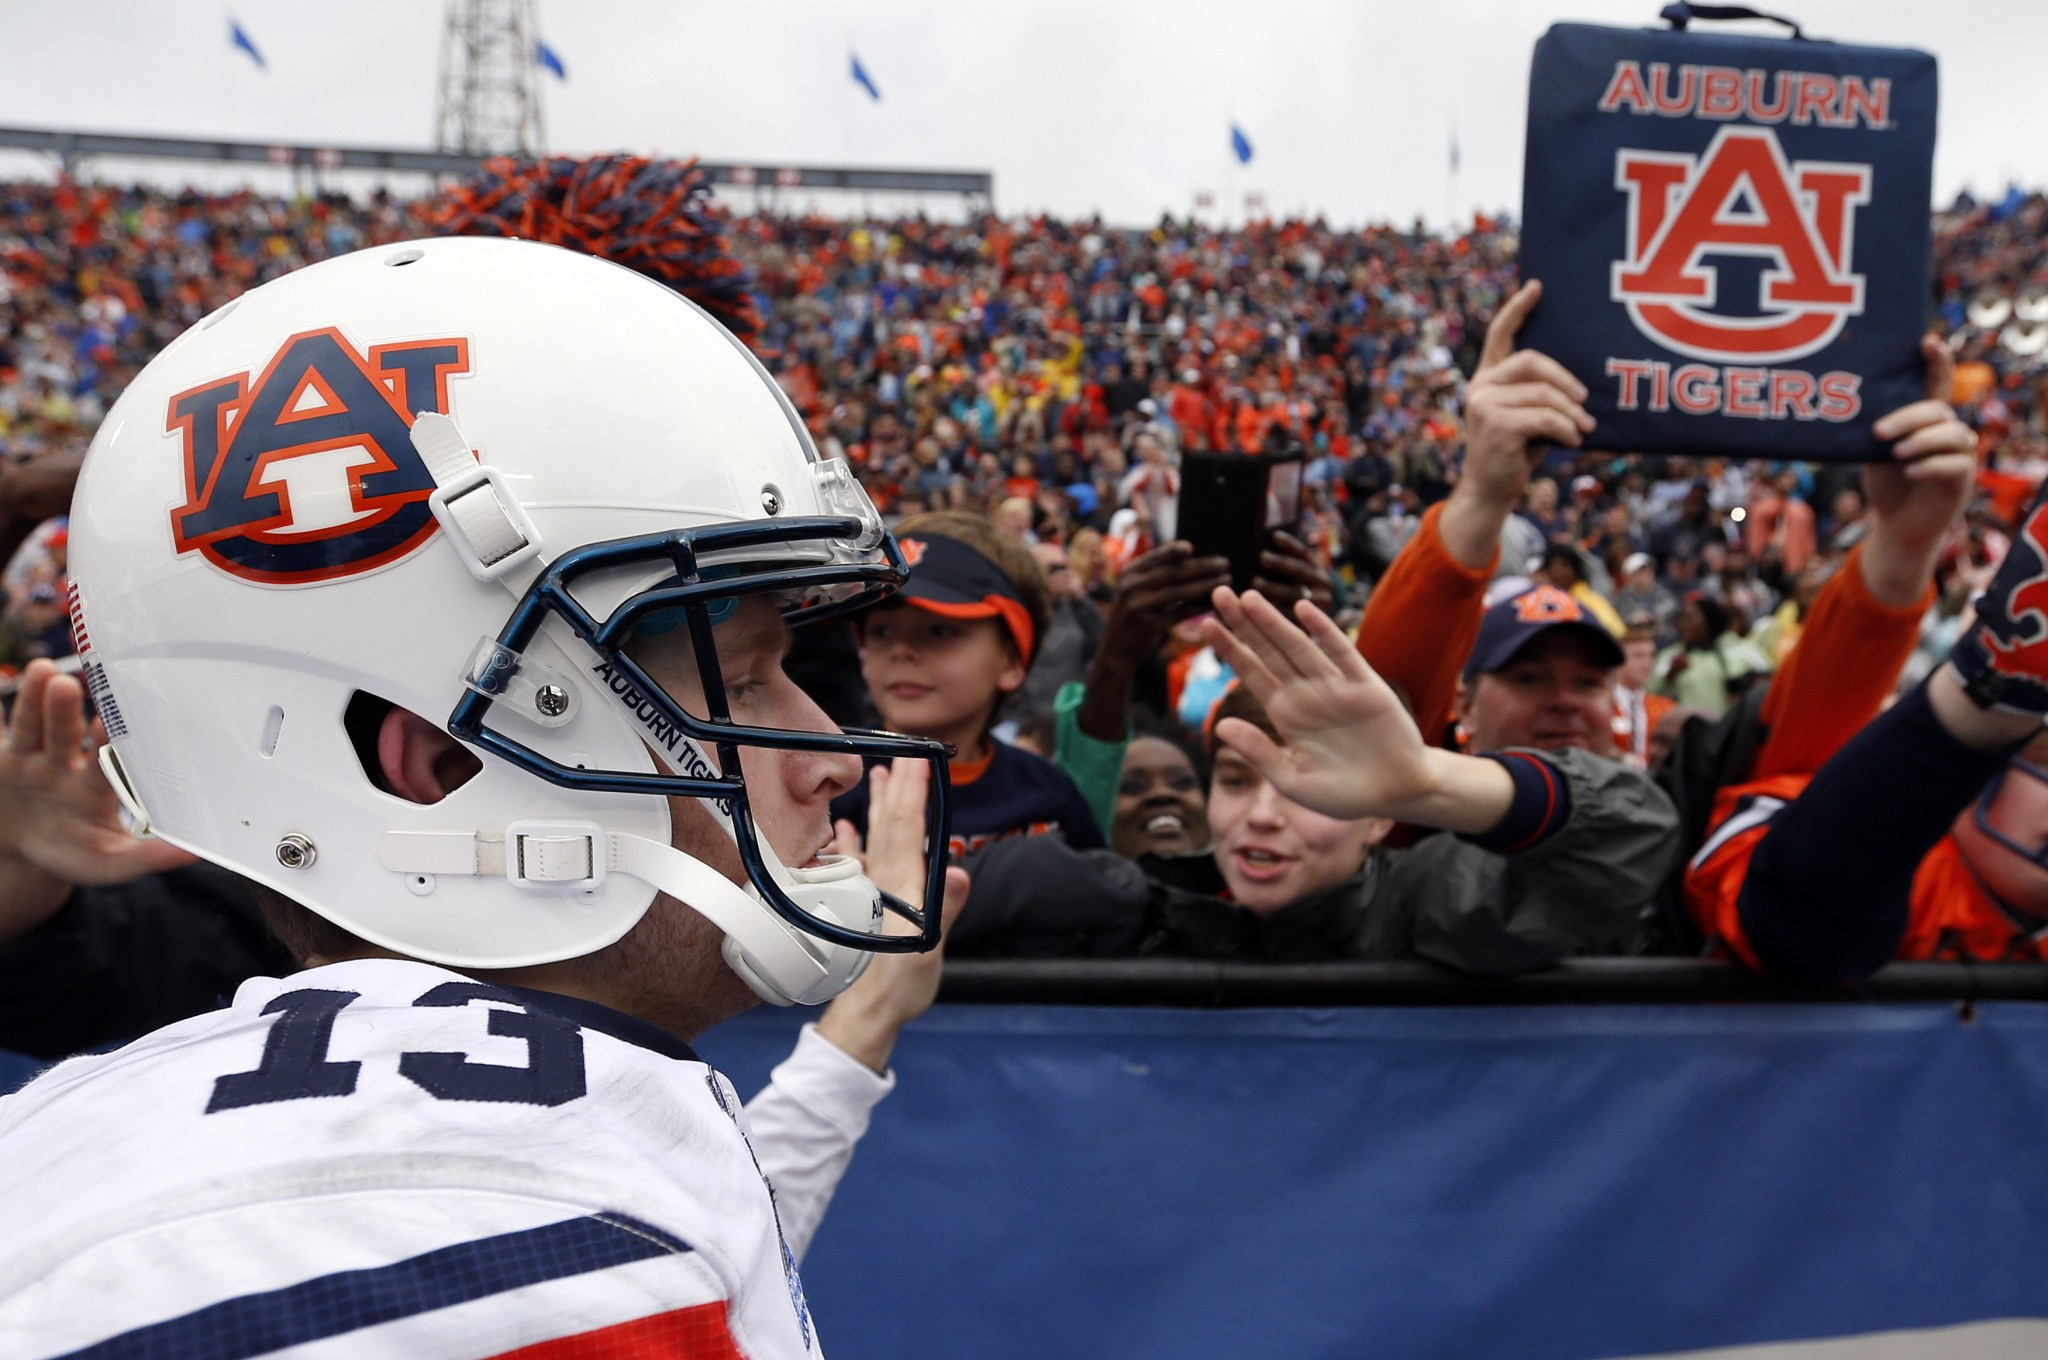 Sean White led Auburn to win over Memphis in the Birmingham Bowl. (AP Photo/Butch Dill)